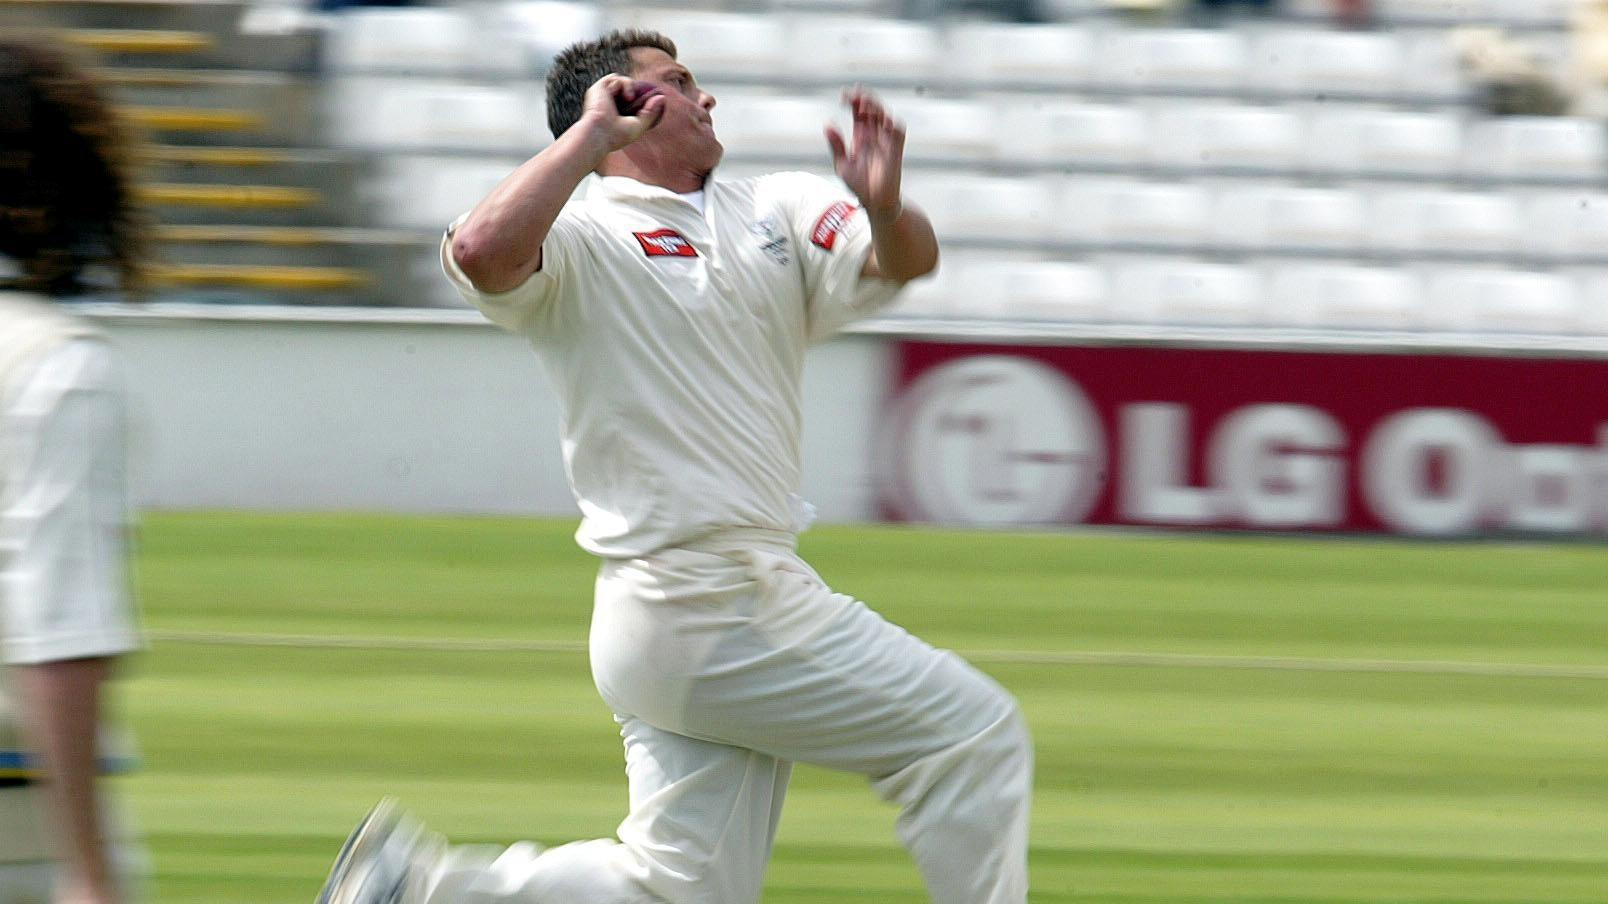 On This Day in 2003 – Darren Gough announces retirement from Test cricket